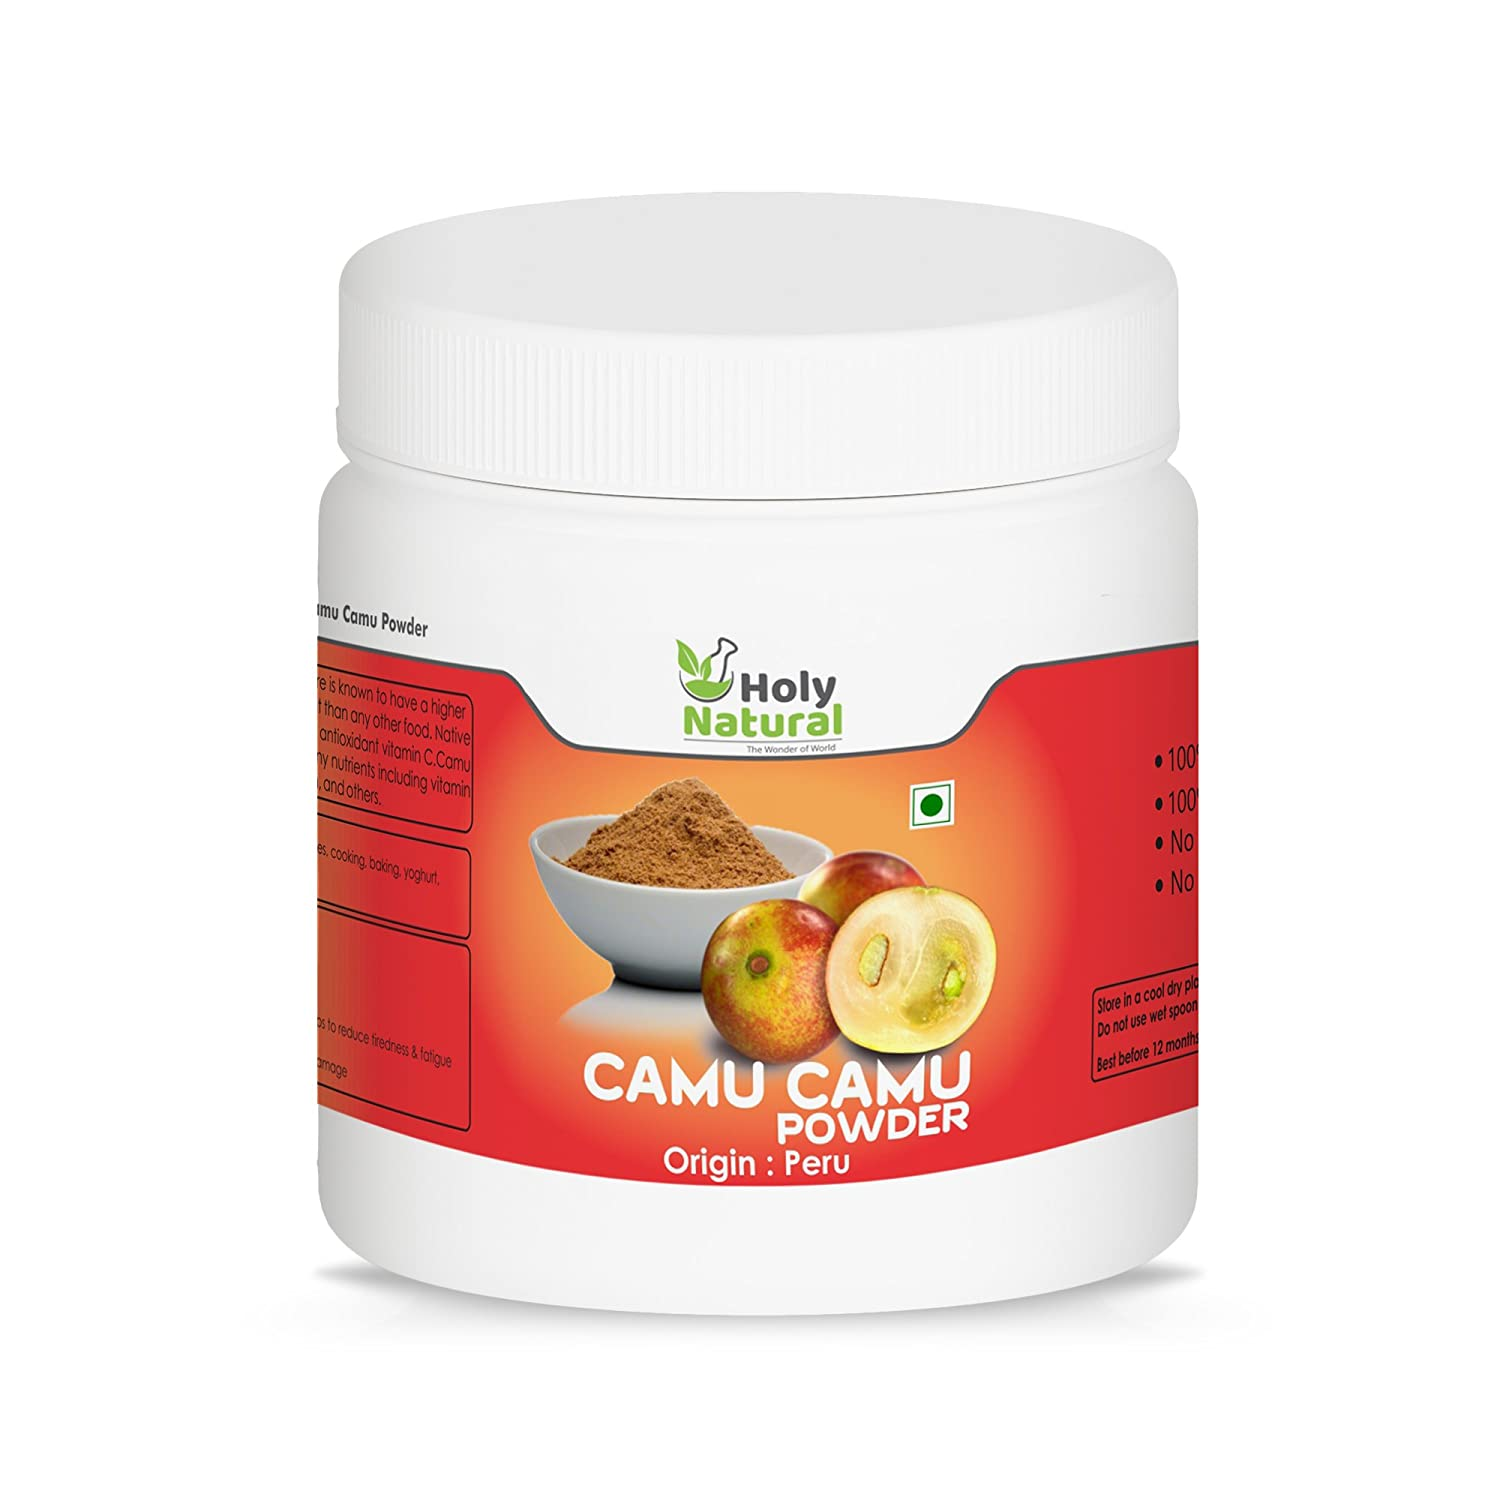 Holy Natural Camu Camu Powder 100 Gm Amazon In Grocery Gourmet Foods